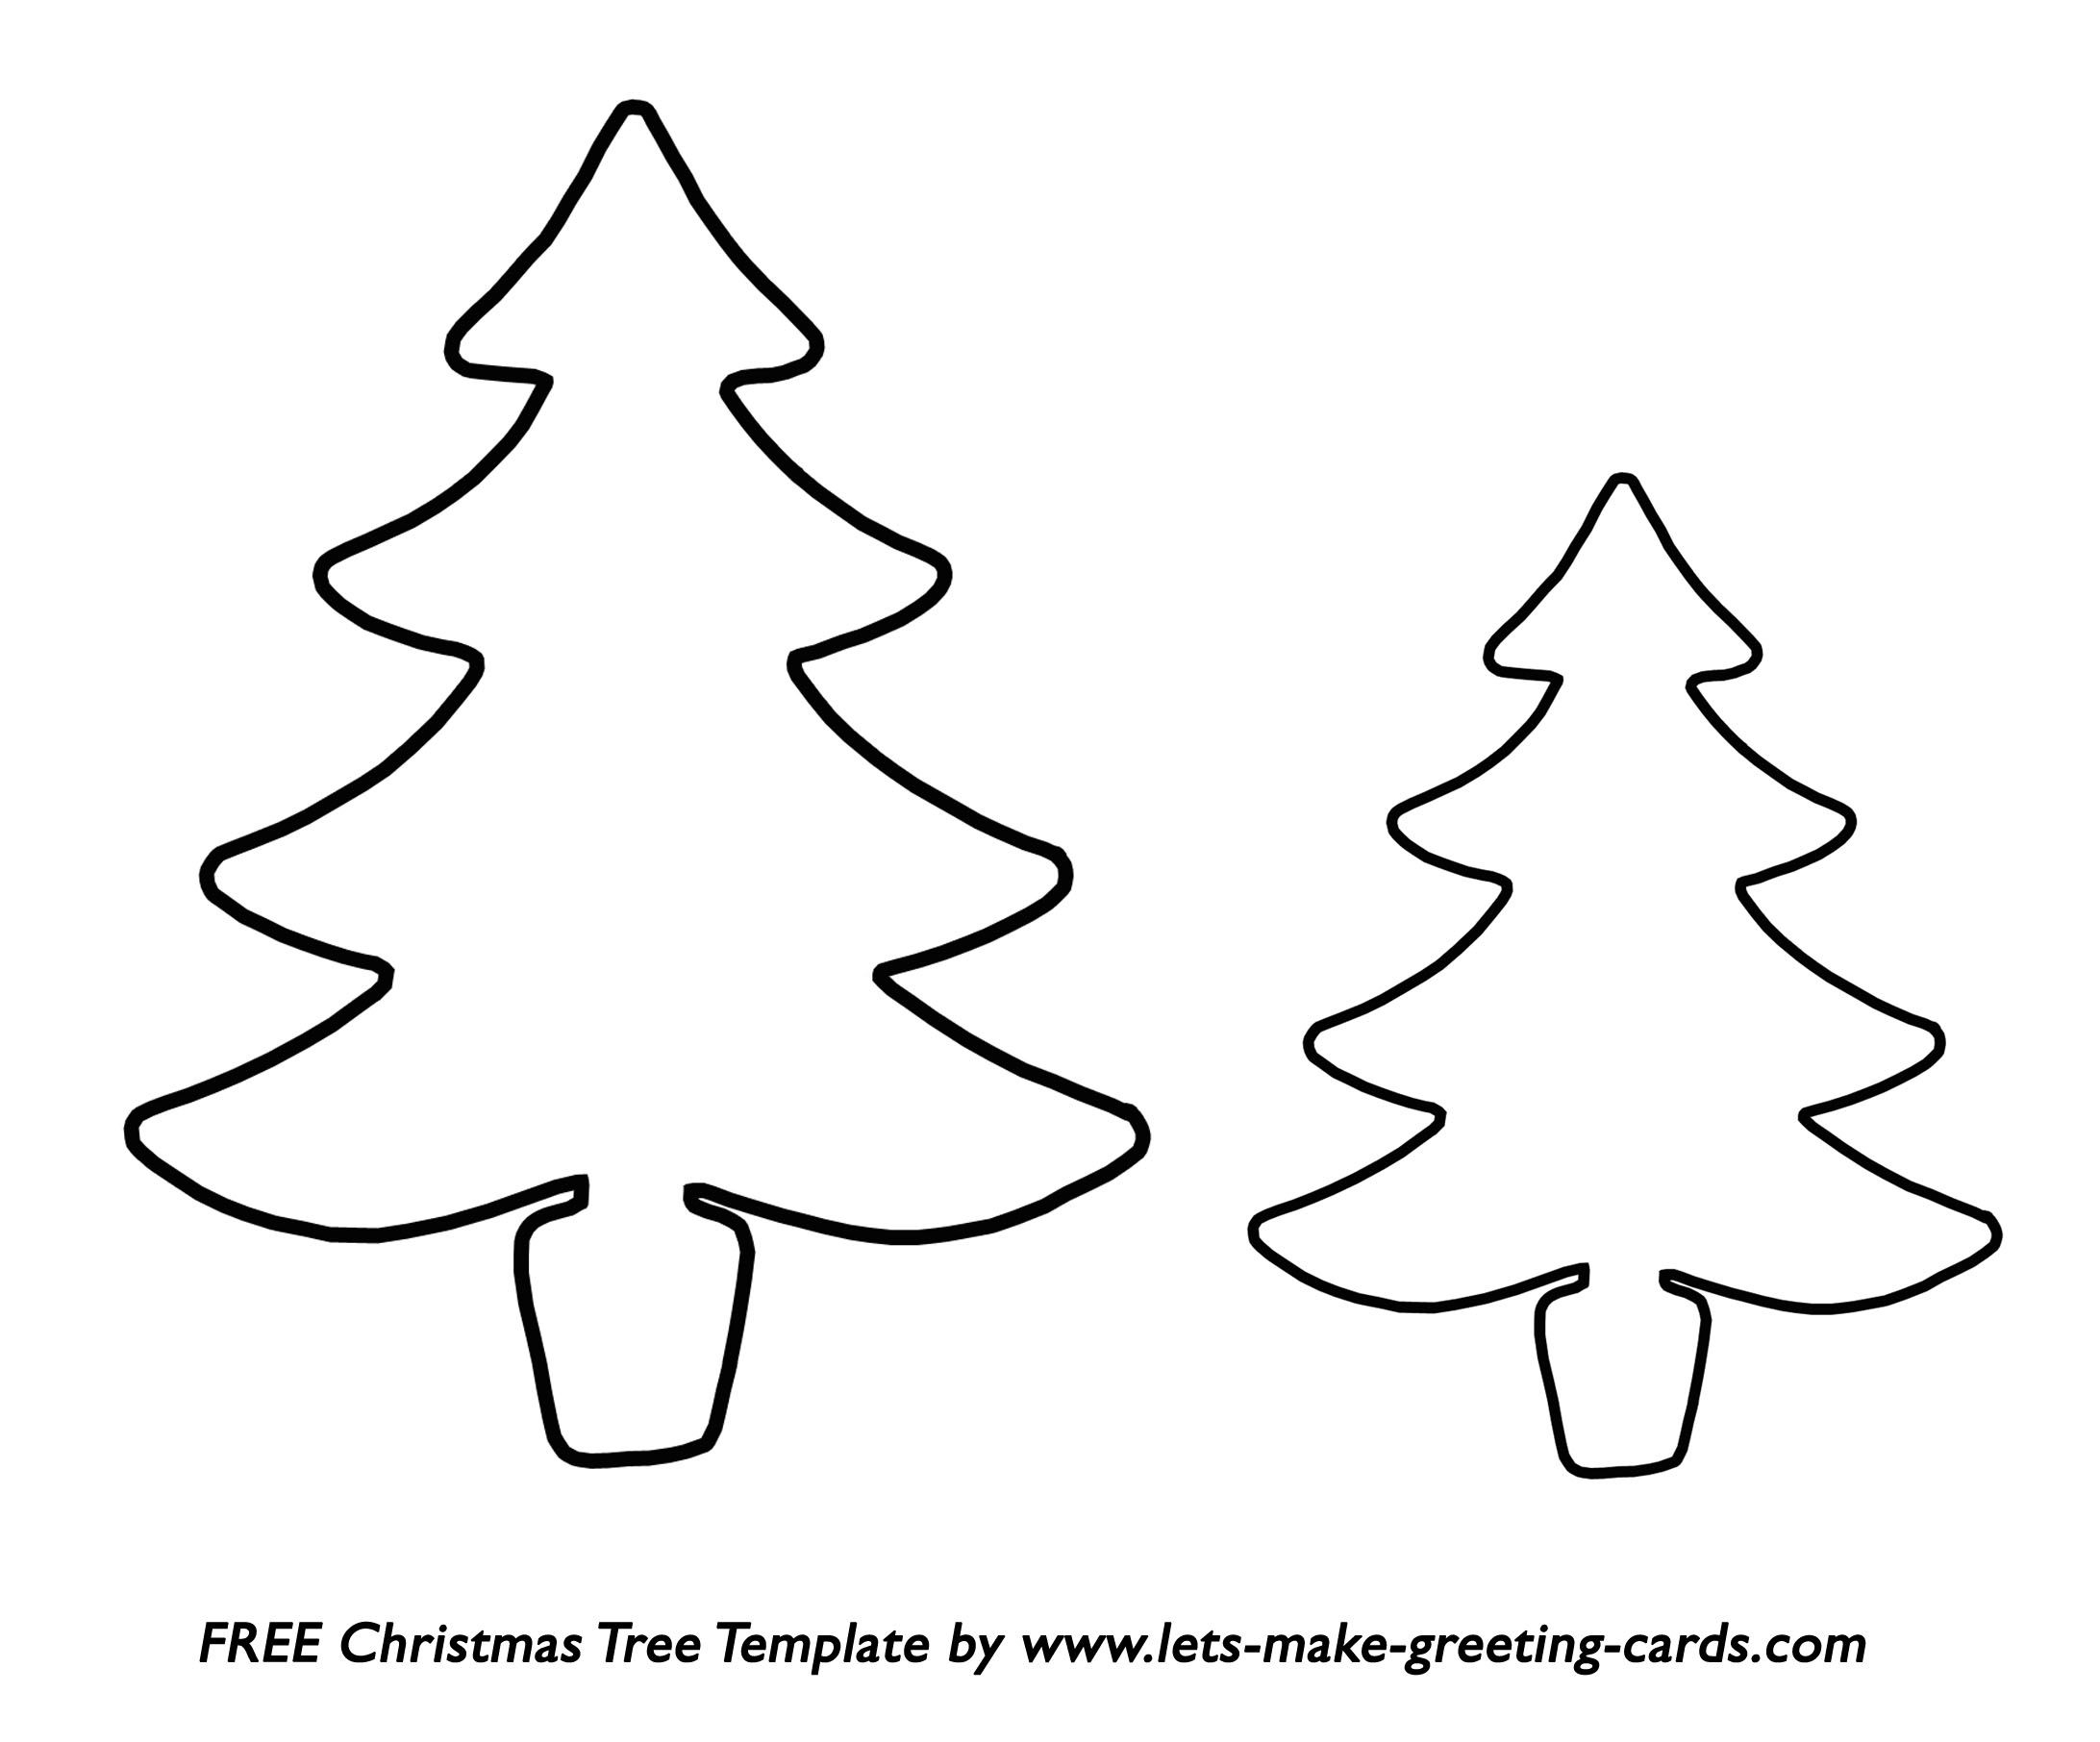 Christmas Tree Templates In All Shapes And Sizes - Free Printable Christmas Tree Template